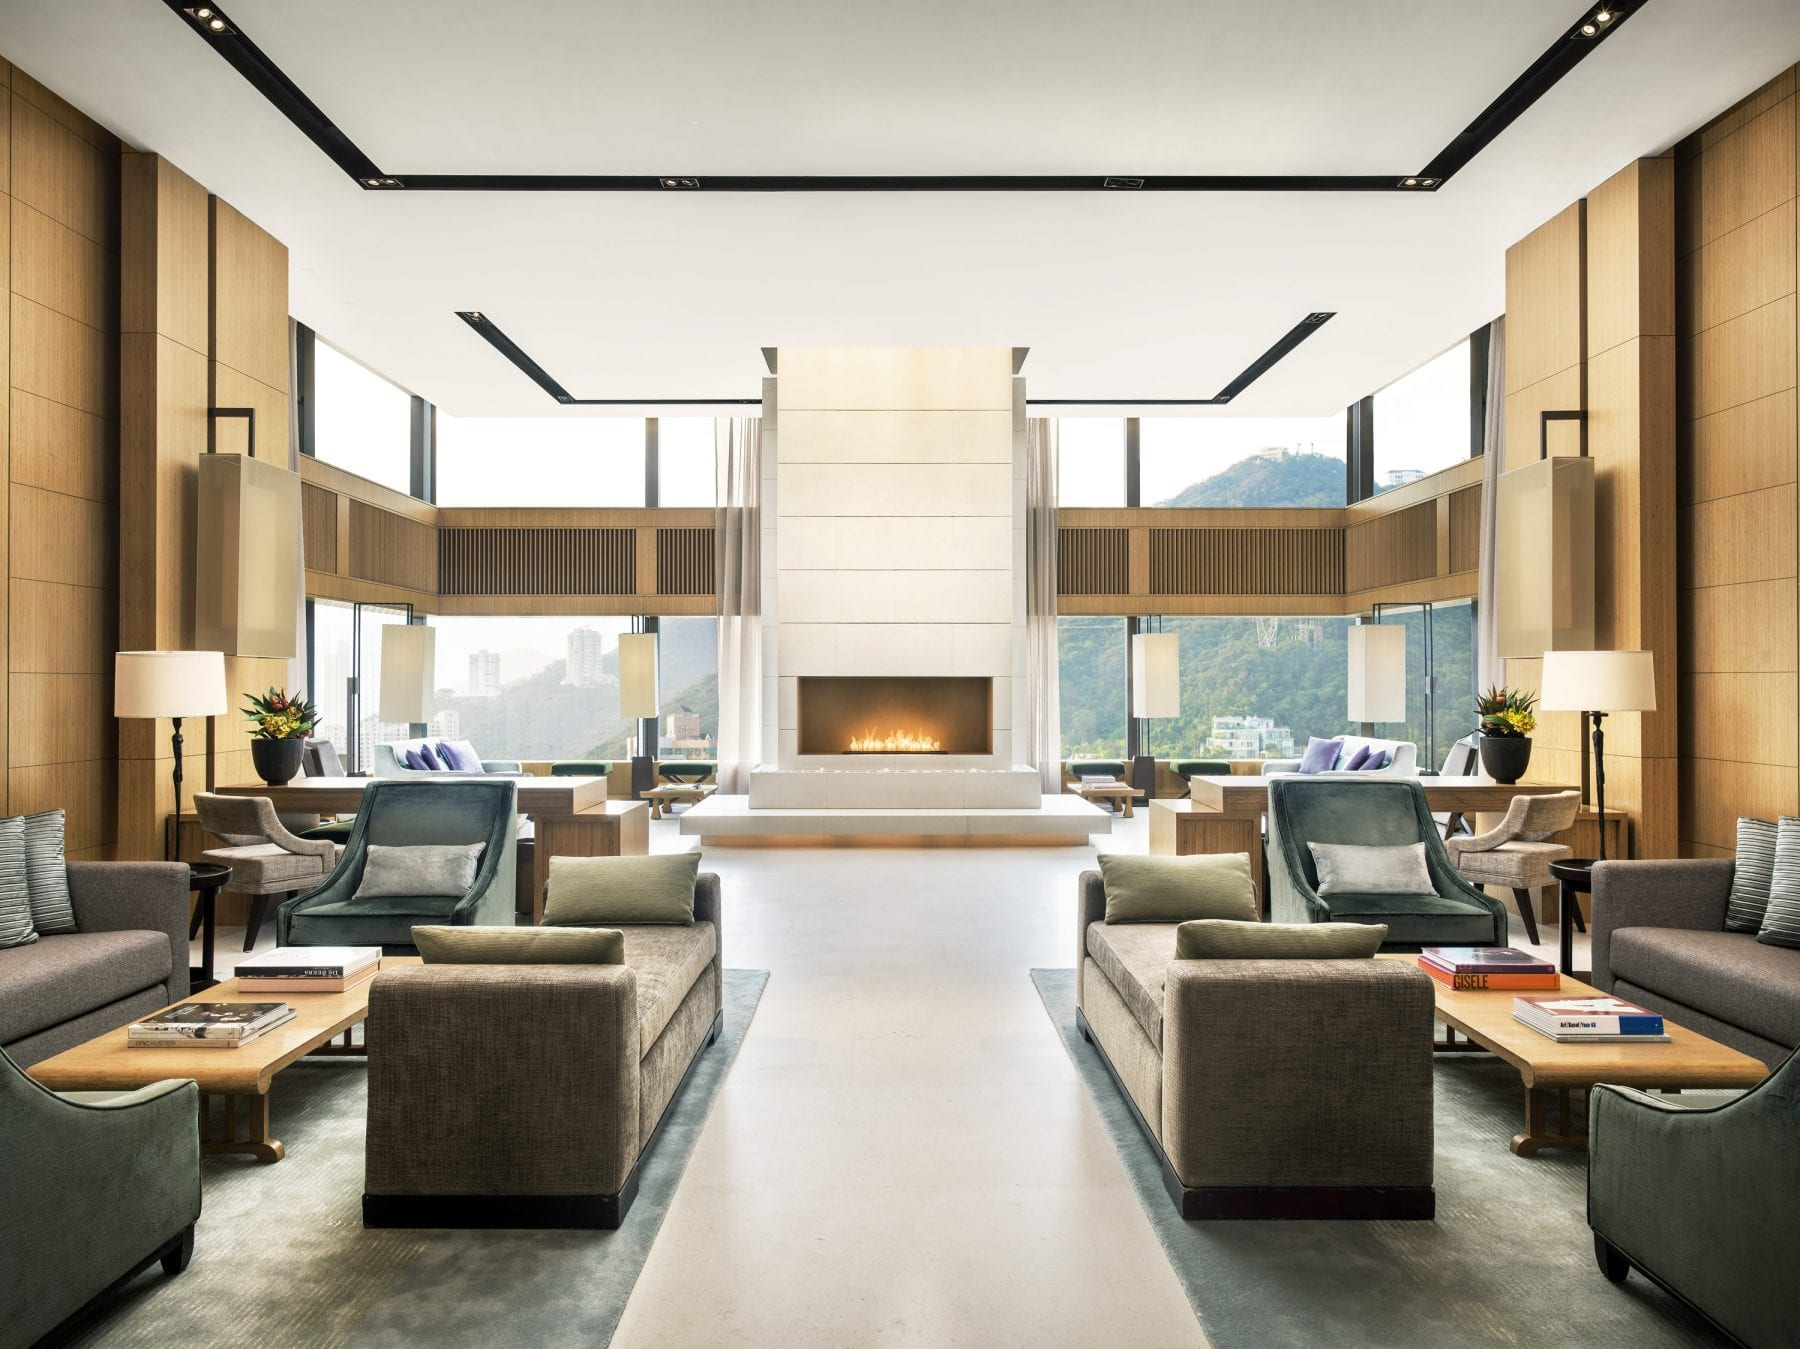 https://uluxeimages.uniqluxe.com/2020/11/The-Upper-House_Sky-Lounge-scaled.jpg